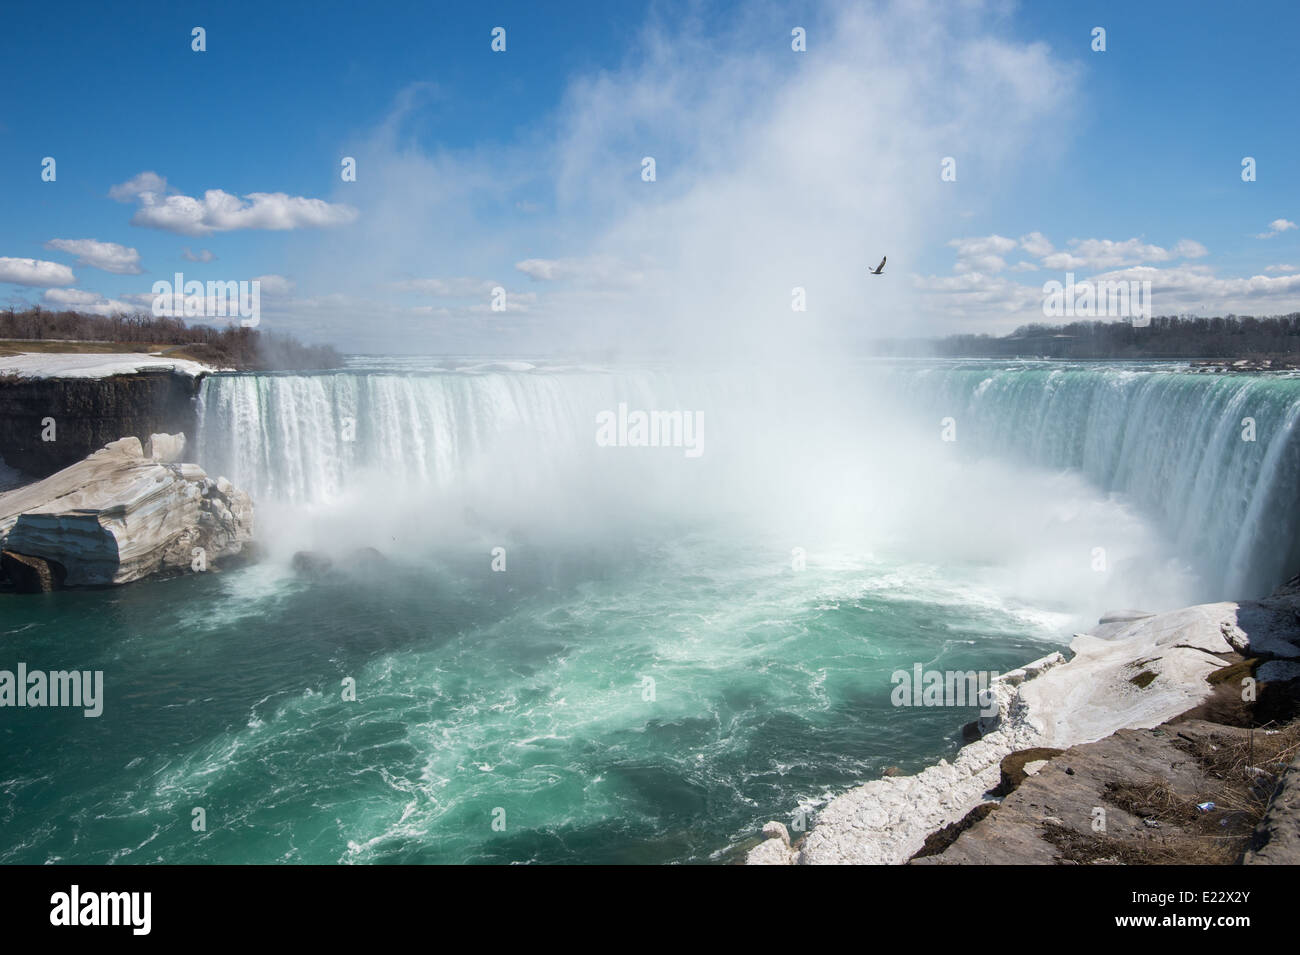 niagara falls canada on april 27 2014 due to the cold winter